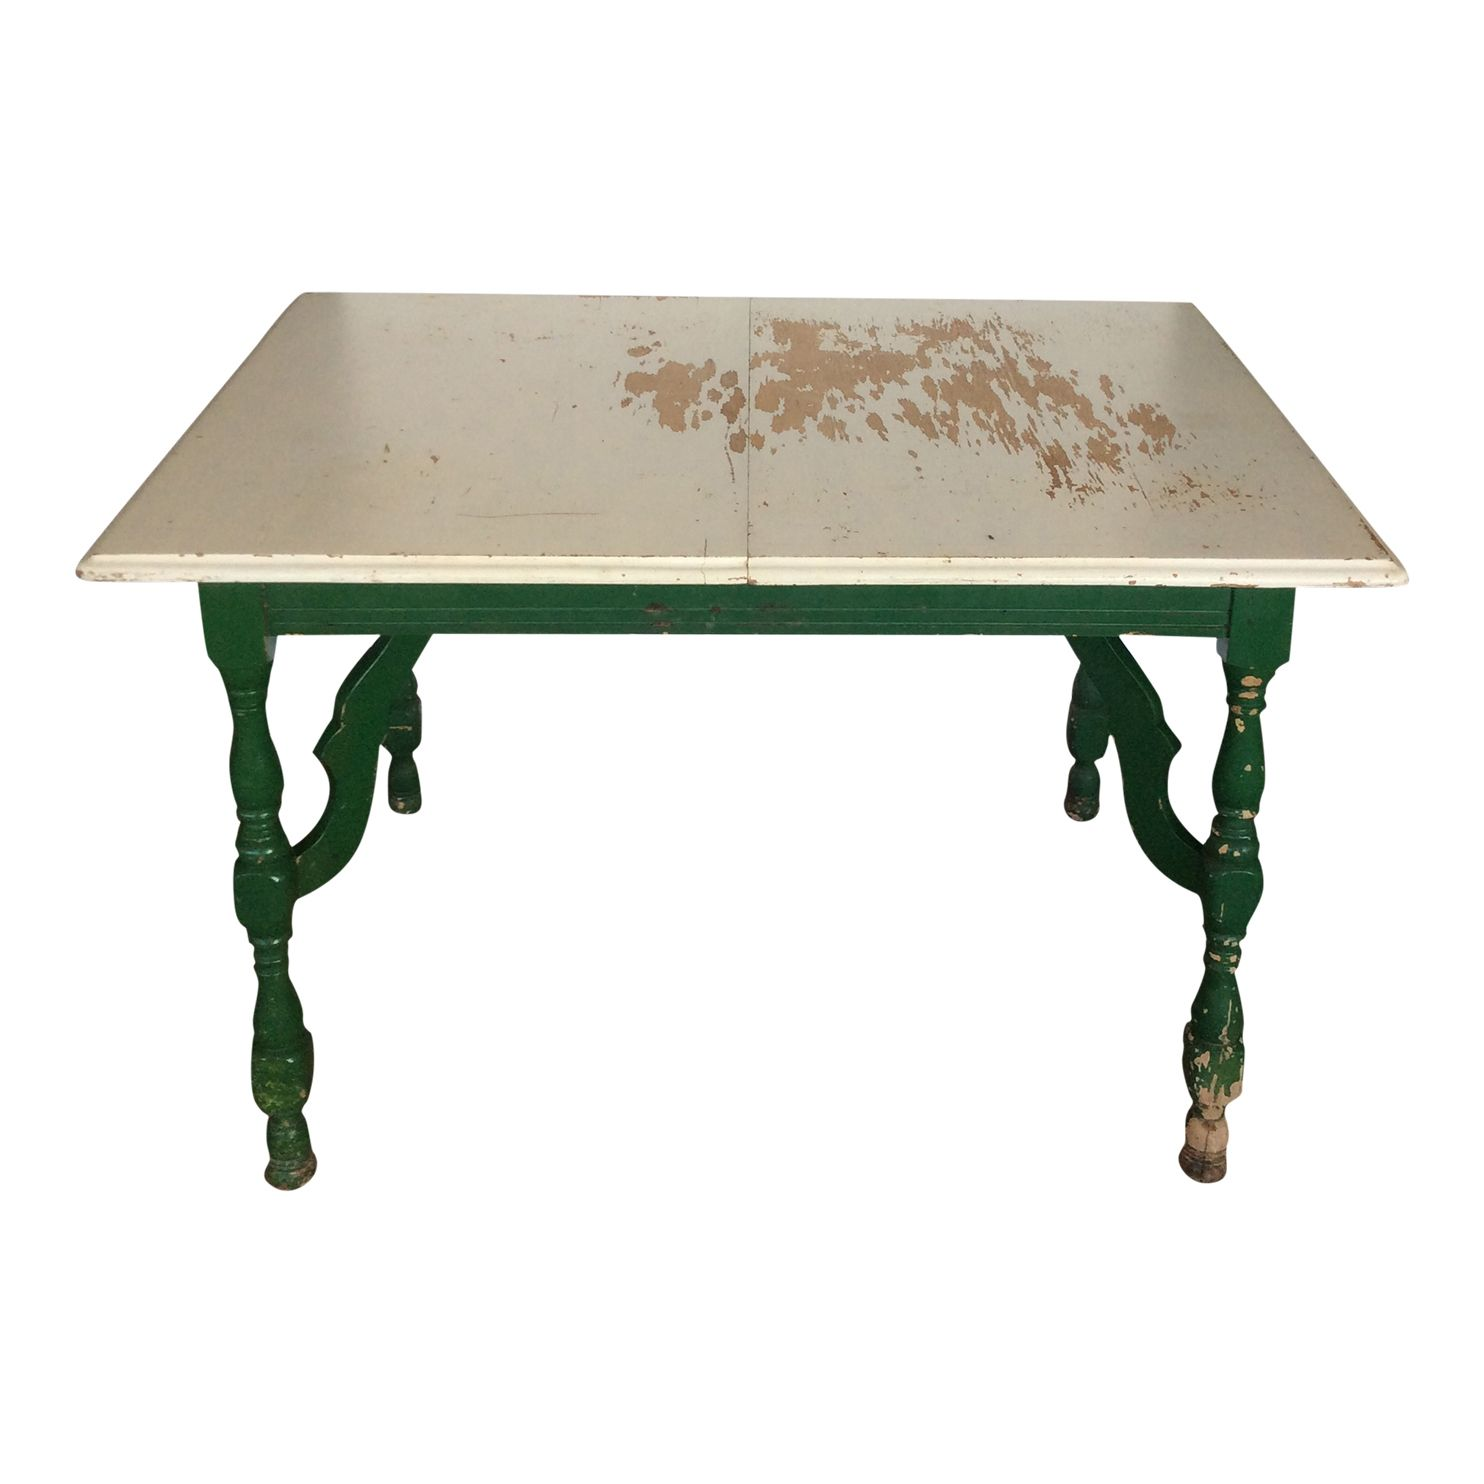 Green Table, Vintage Dishware, Table